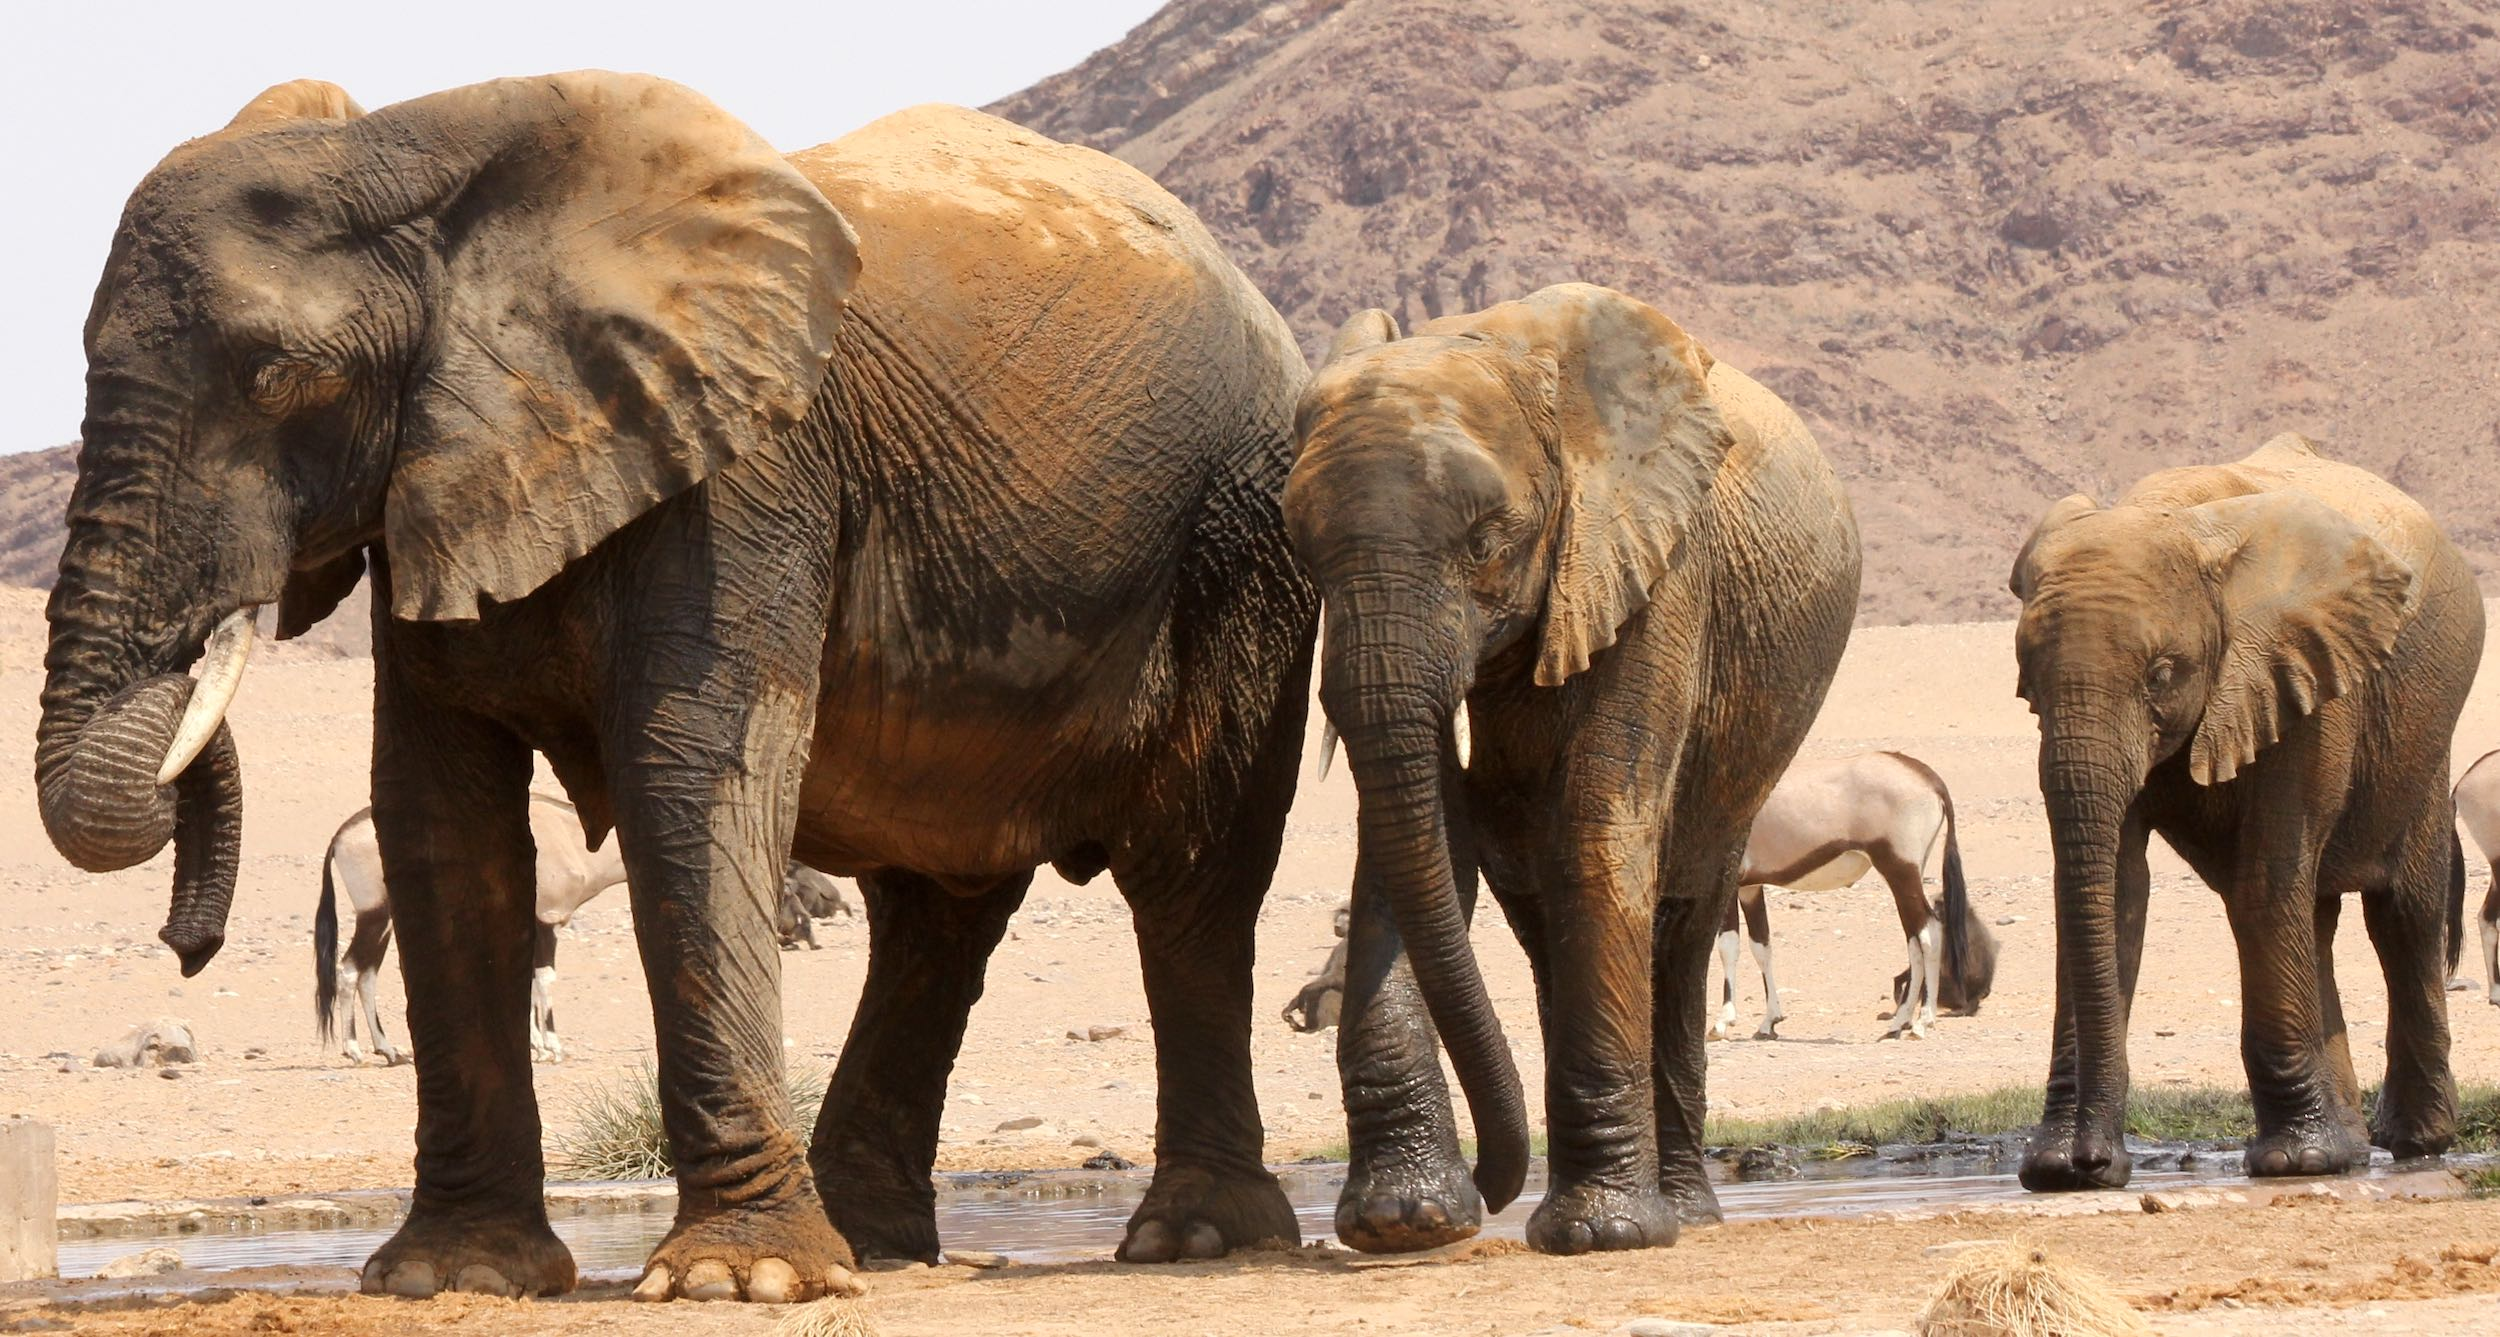 A group of elephants at a waterhole in the desert of NW Namibia.